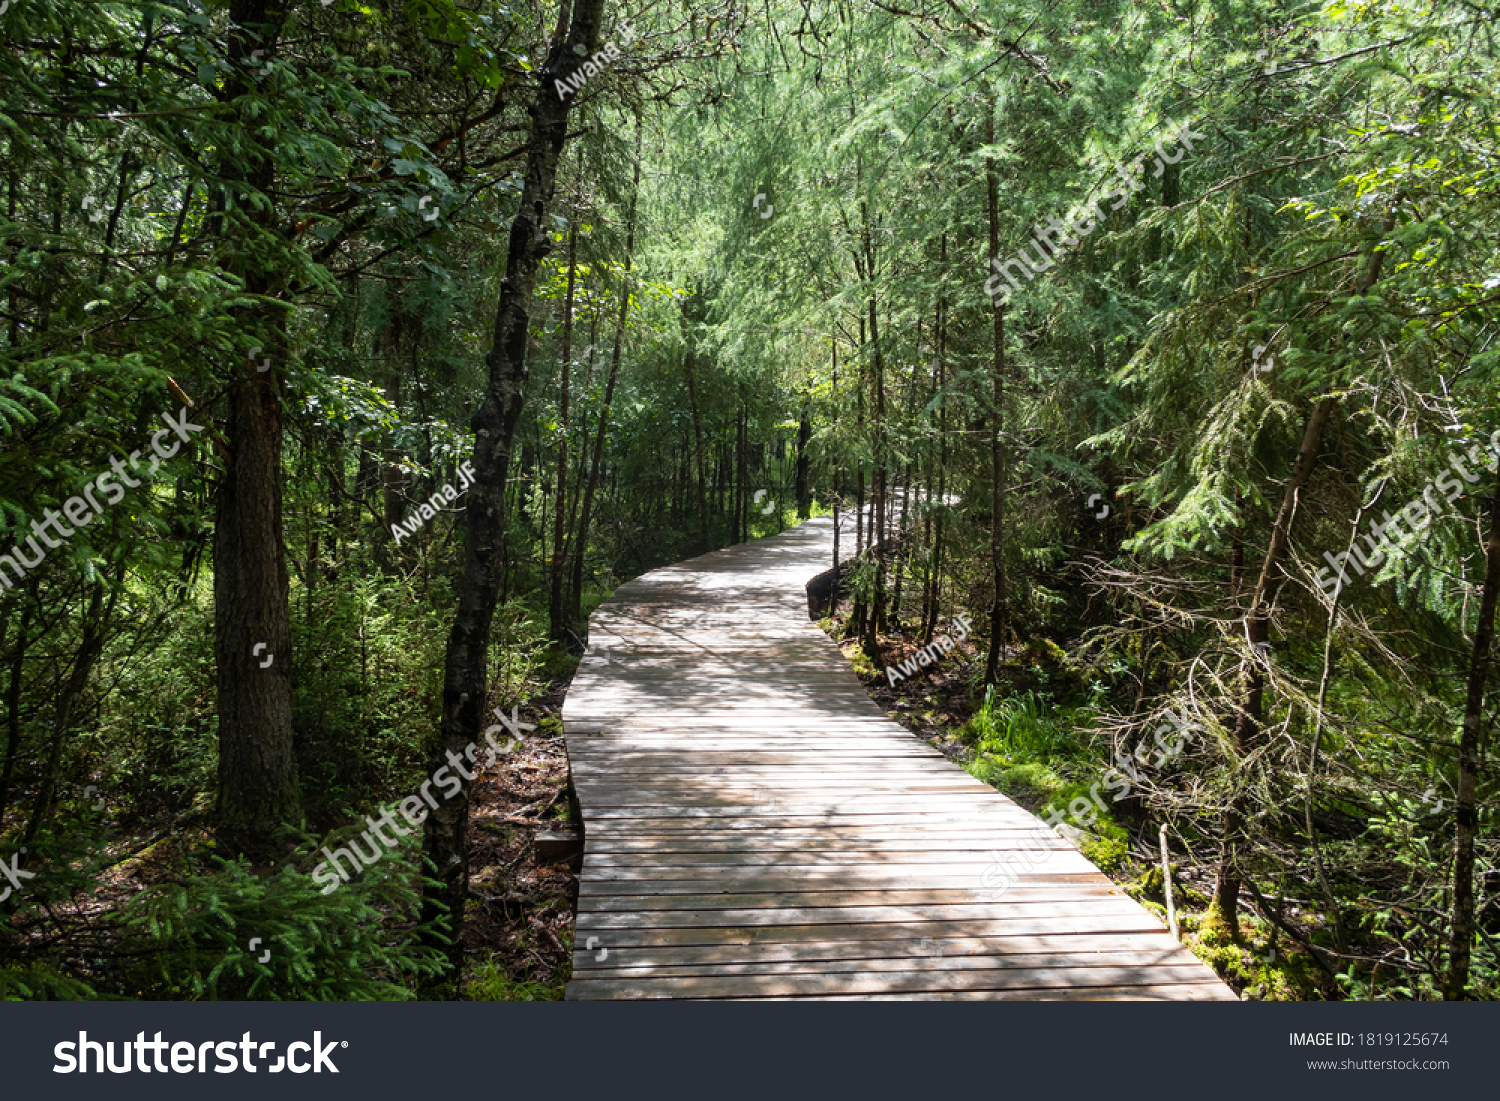 stock-photo-view-of-a-wooden-footpath-pa